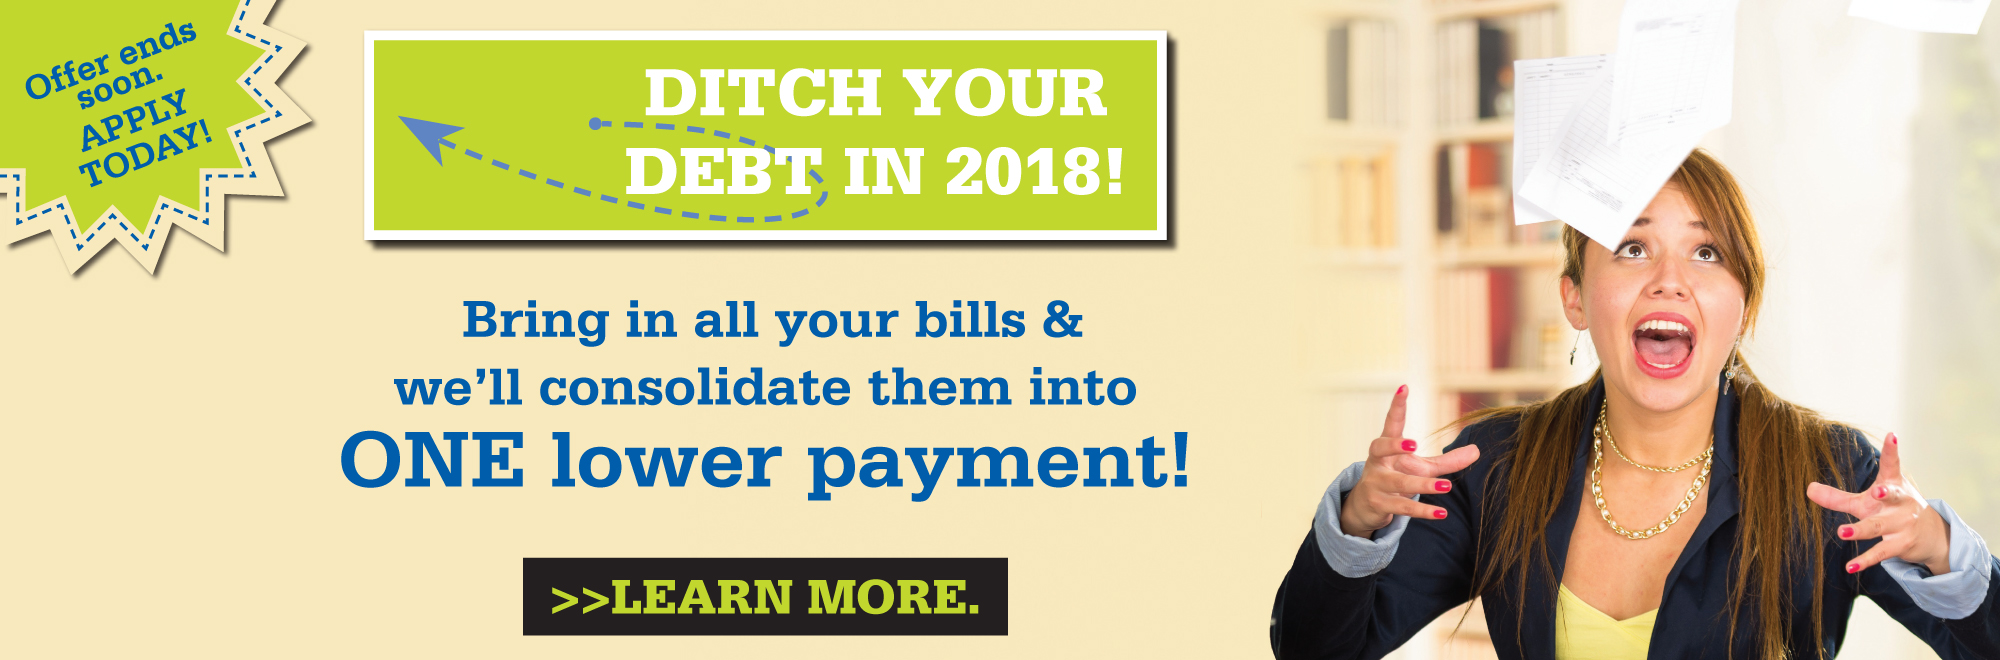 Ditch Your Debt - apply now!